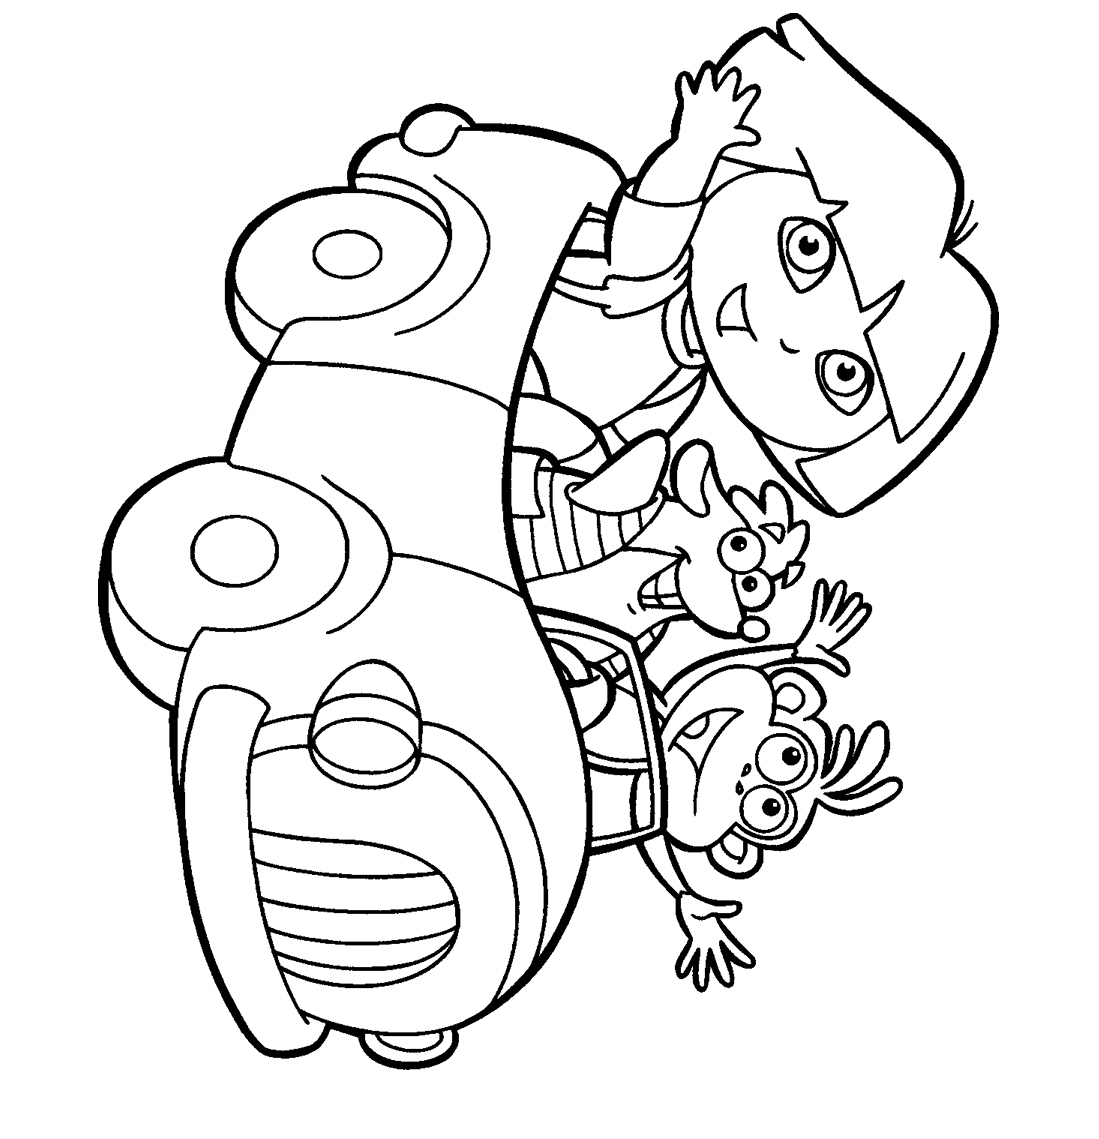 coloring page for kids printable coloring pages for kids coloring pages for kids page kids coloring for